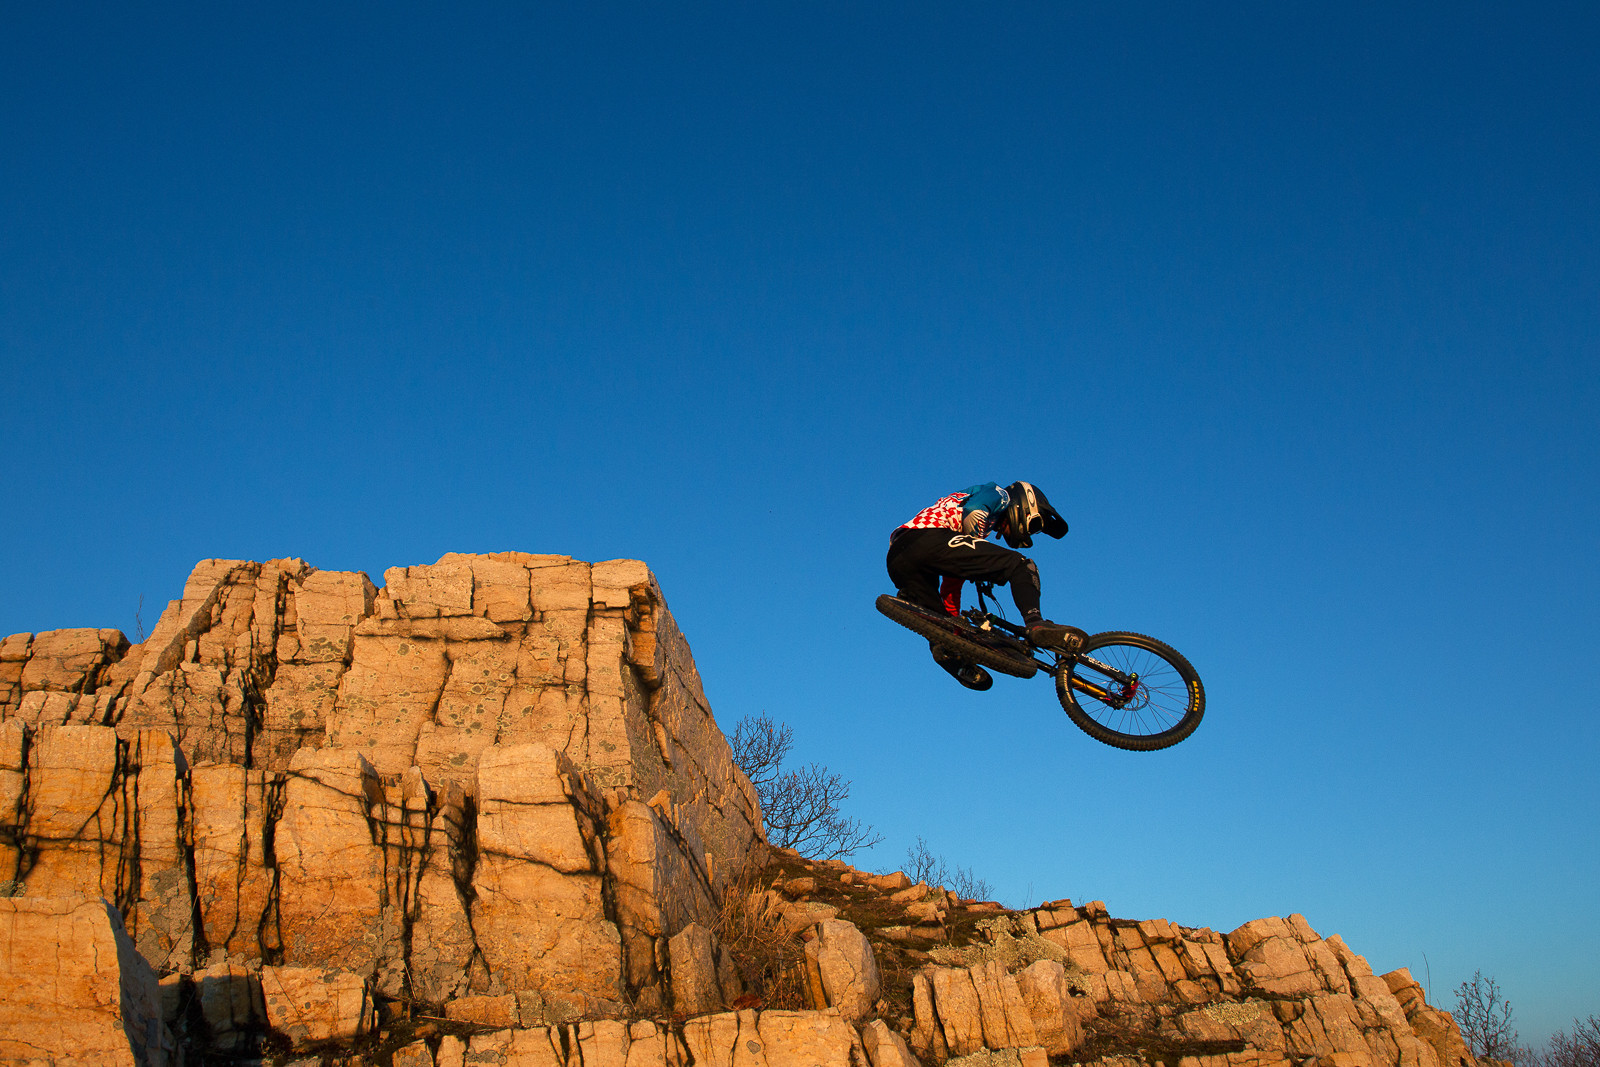 Jakub - EWIA - Mountain Biking Pictures - Vital MTB